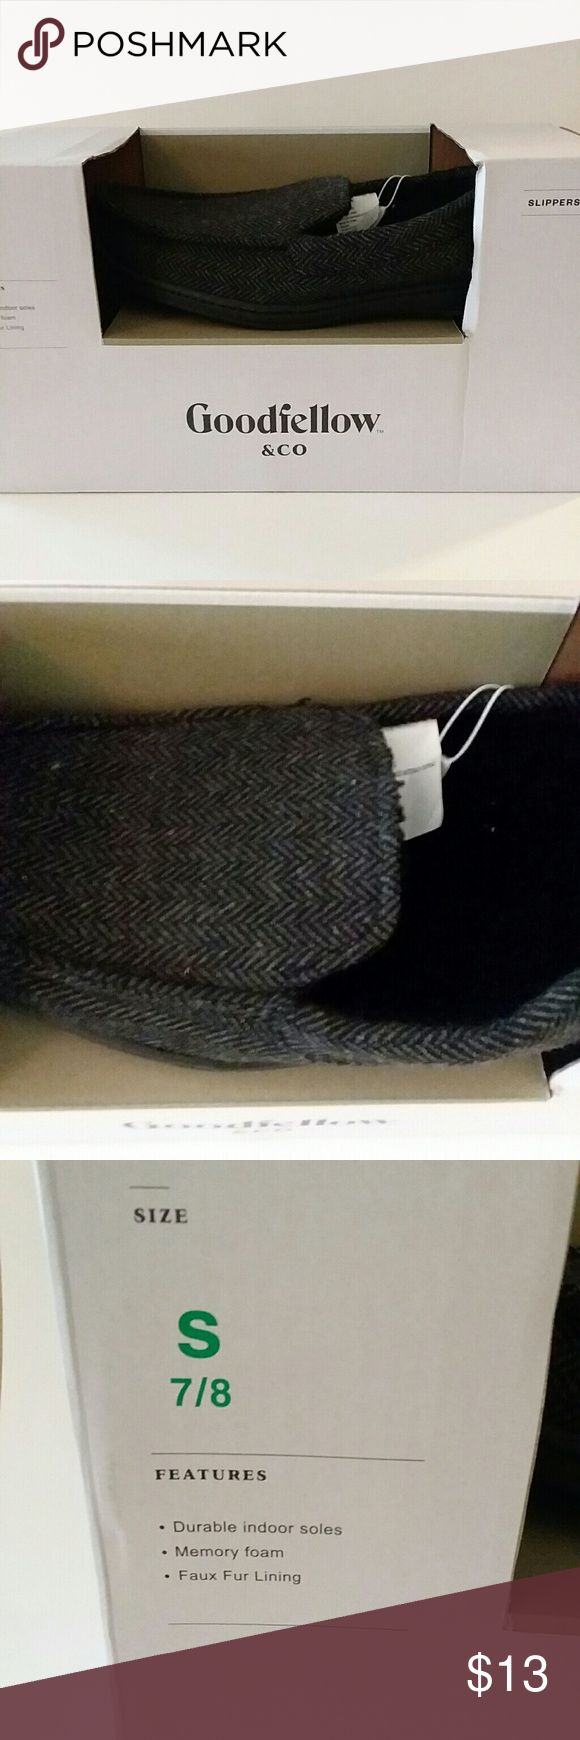 Goodfellow Mens Gray /Black Slip On Slippers New in Box Goodfellow Mens Black/Gray Slip On Slippers. They have durable indoor soles and memory foam in sole. Size: 7/8 Smoke FREE and Pet FREE environment Goodfellow Shoes Loafers & Slip-Ons